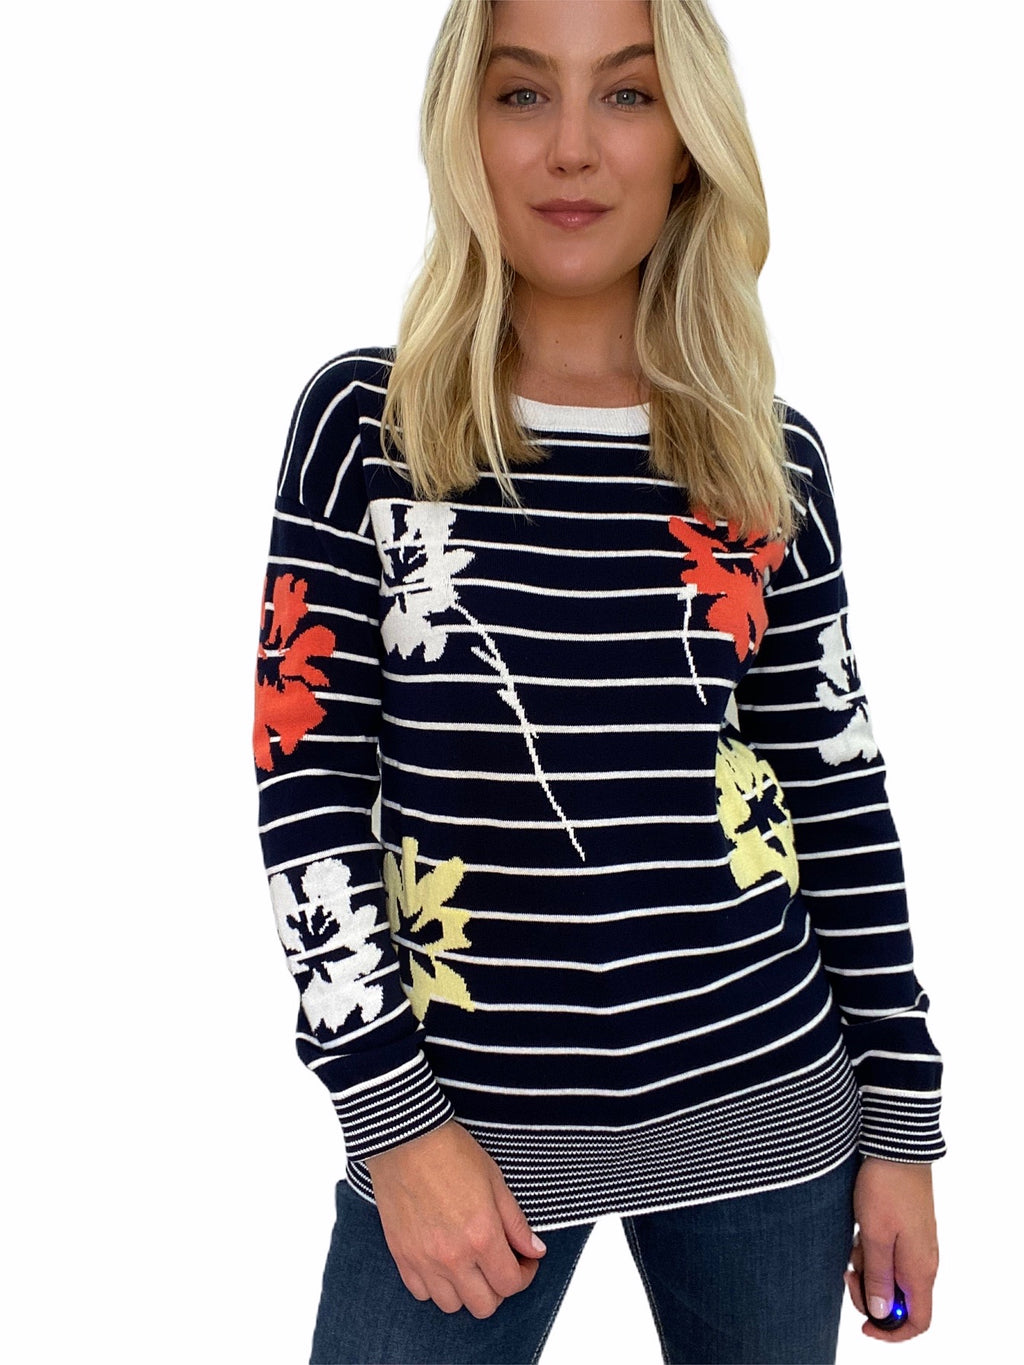 Stripe Sweater with Flowers